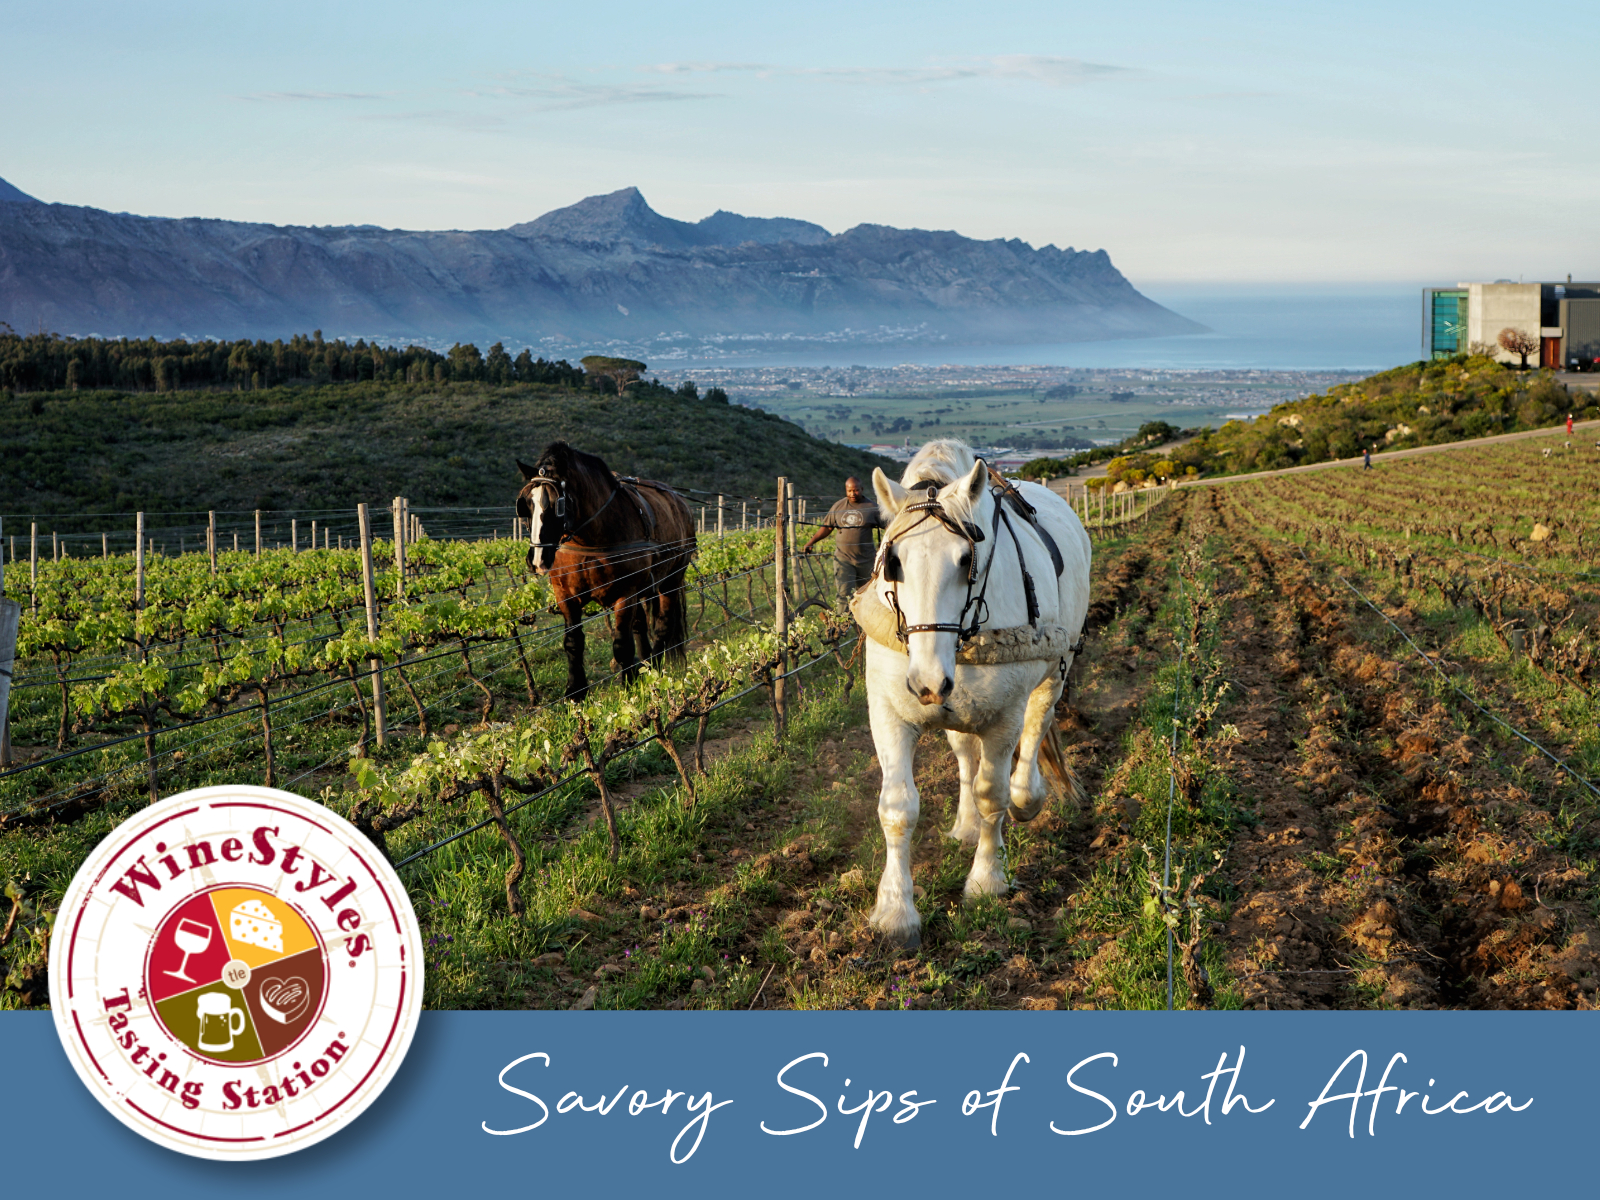 Savory Sips of South Africa